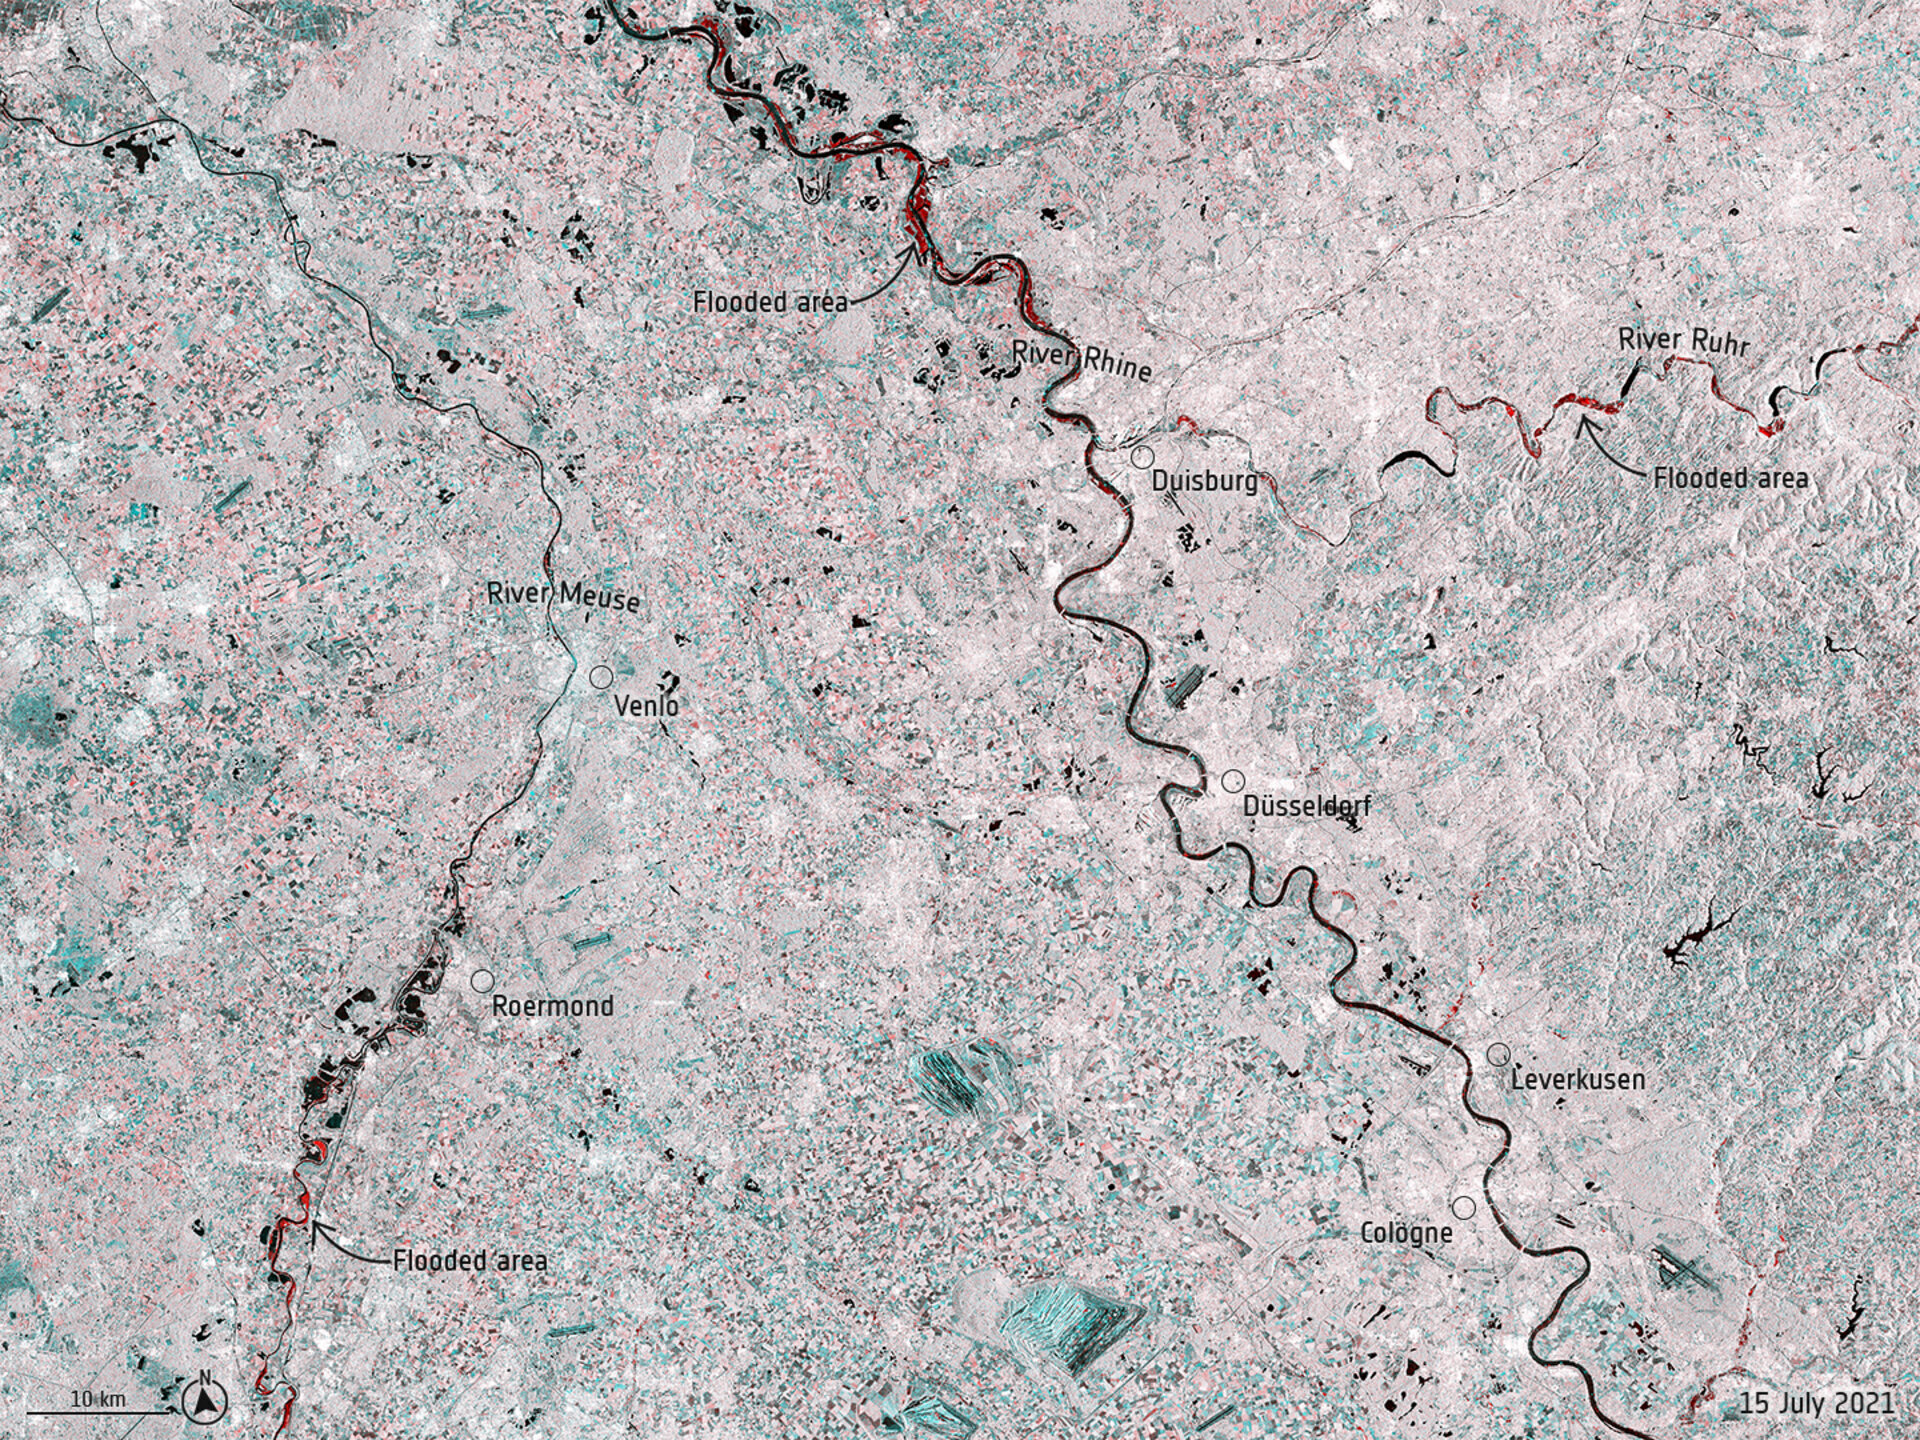 Record rainfall has caused swollen rivers to burst their banks and wash away homes and other buildings in western Europe. Data from the Copernicus Sentinel-1 mission are being used to map flooded areas to help relief efforts.